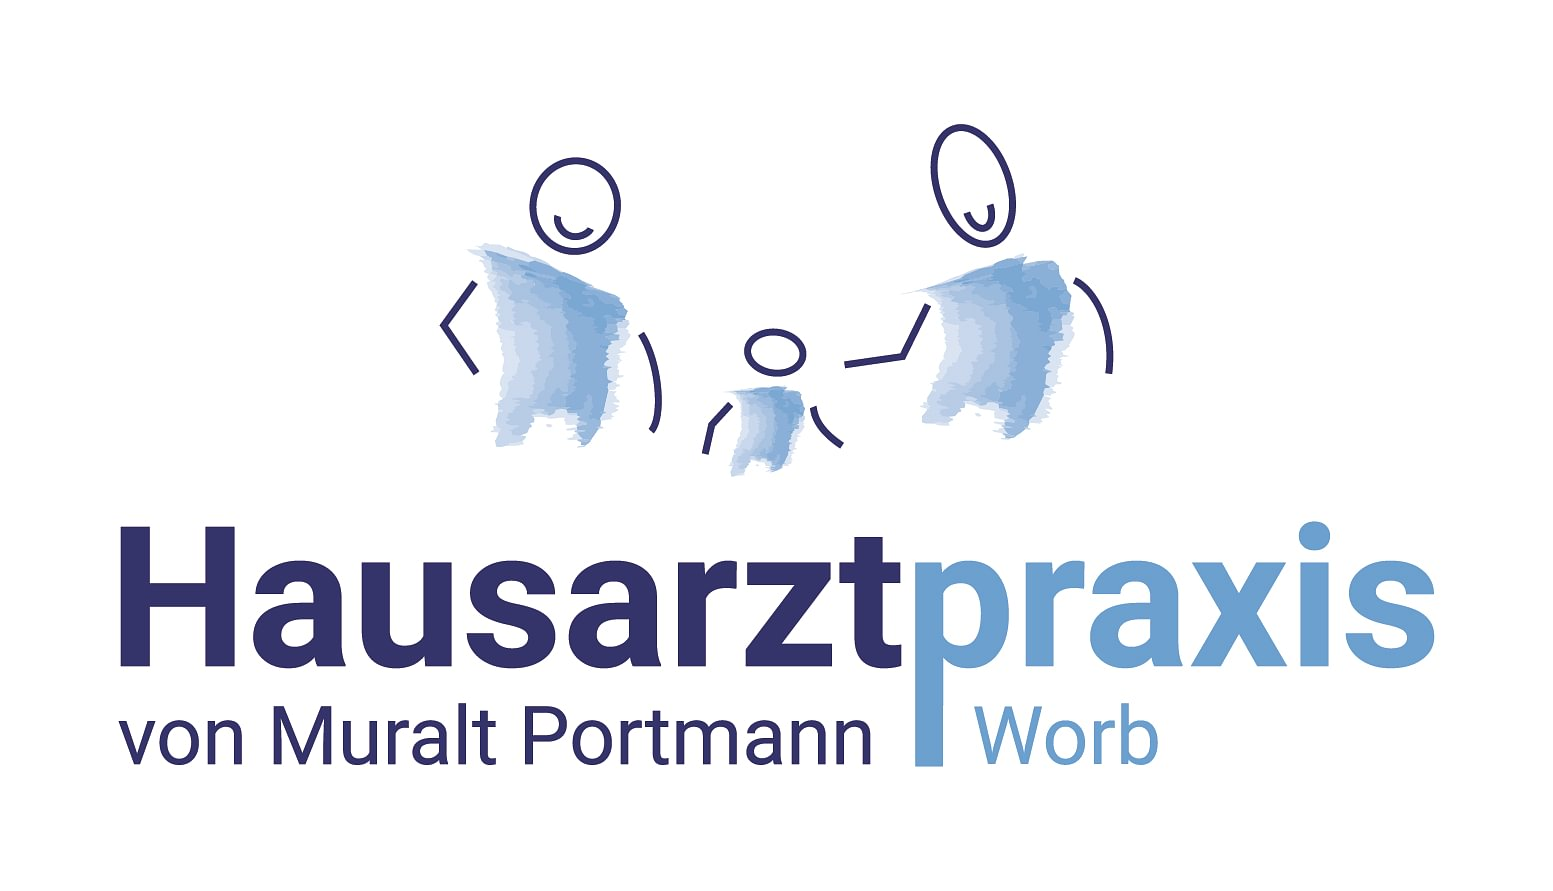 Hausarztpraxis Worb